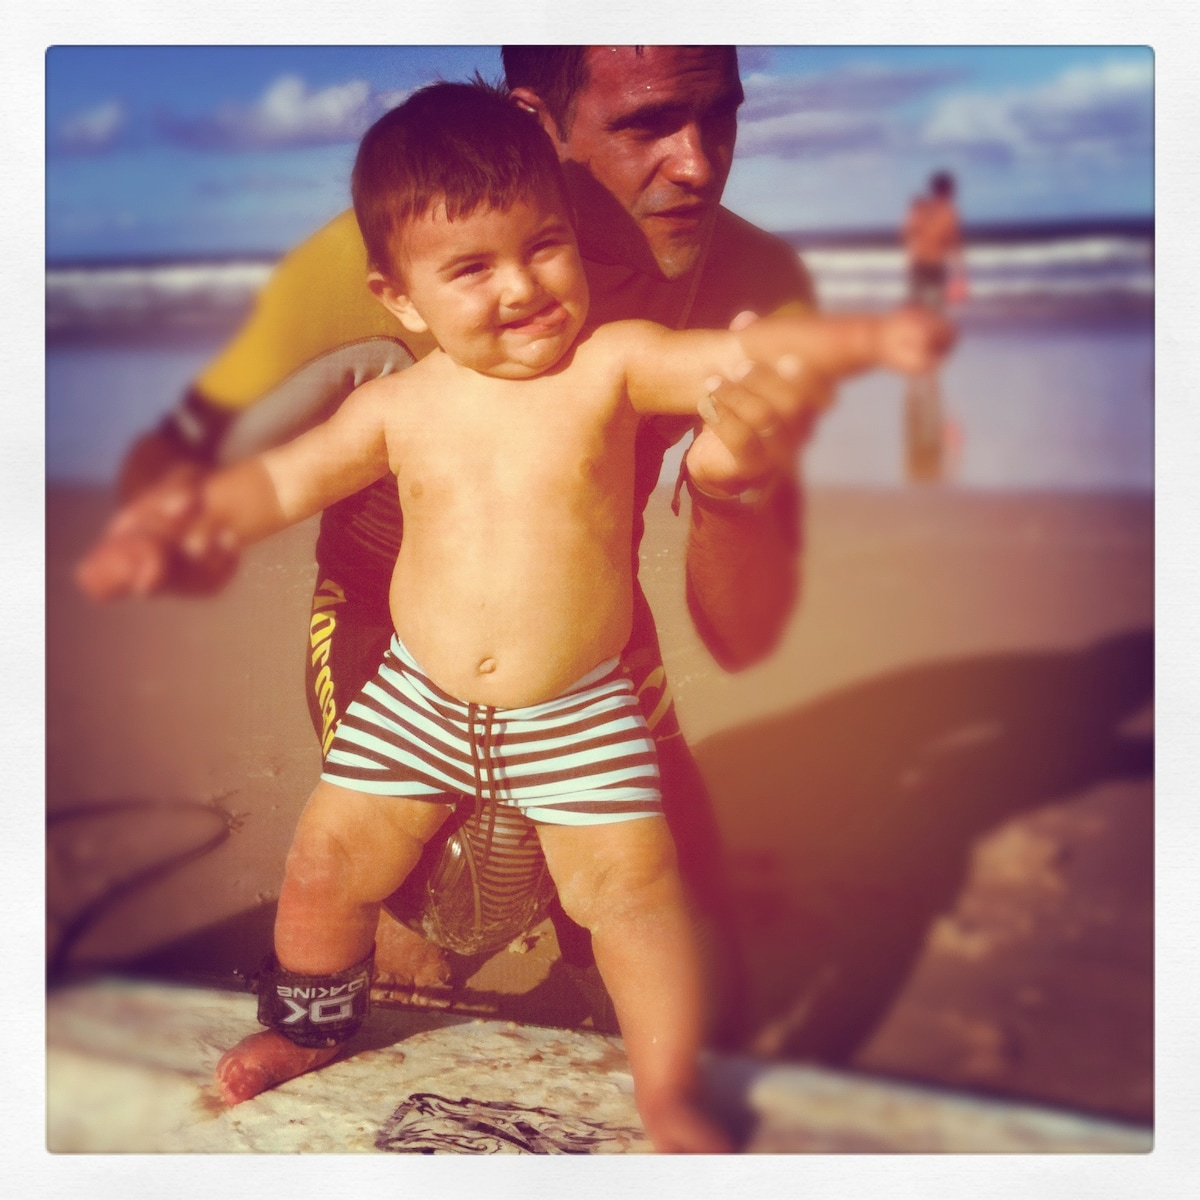 I am a professional surfer, competed in the ASP Wo